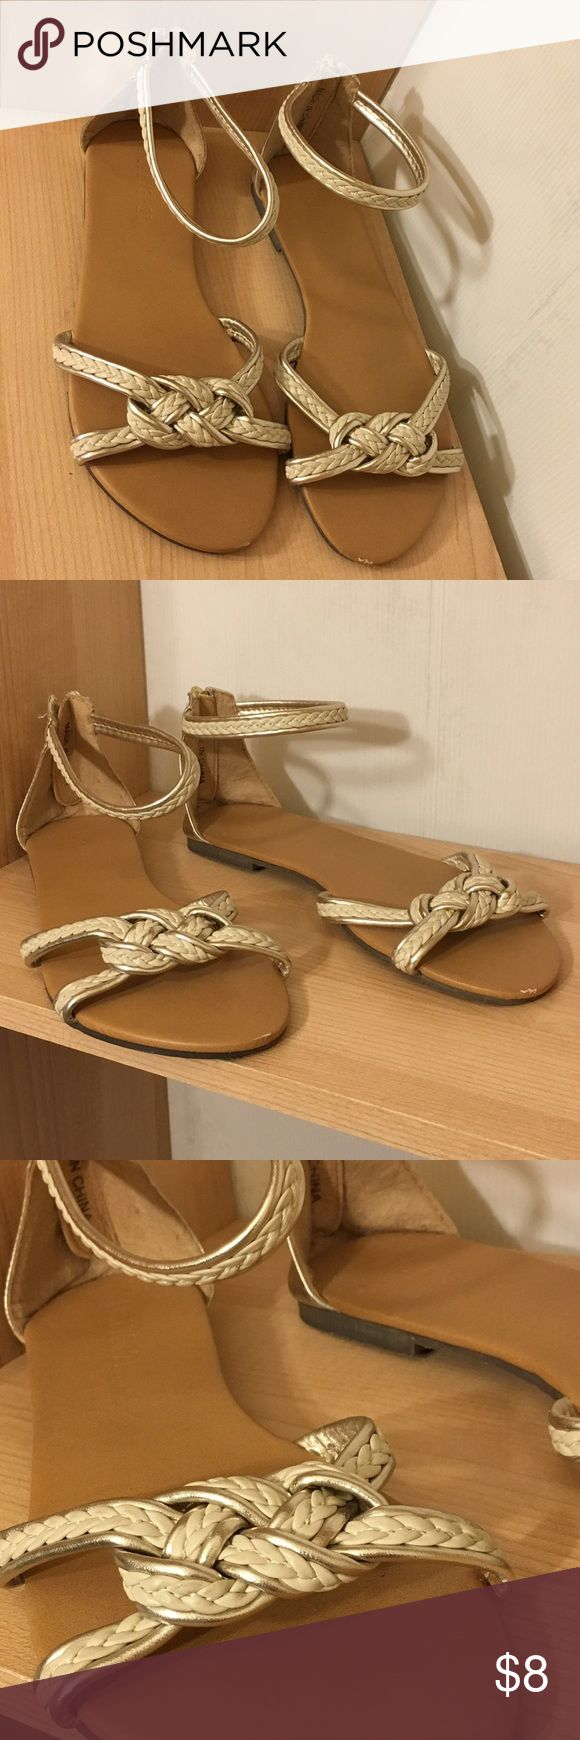 Forever 21 Knot Sandals Cute size 7 Forever 21 zip up sandals. Gently worn. Cream and gold metallic with nautical knot detail. Zipper on the back. Forever 21 Shoes Sandals